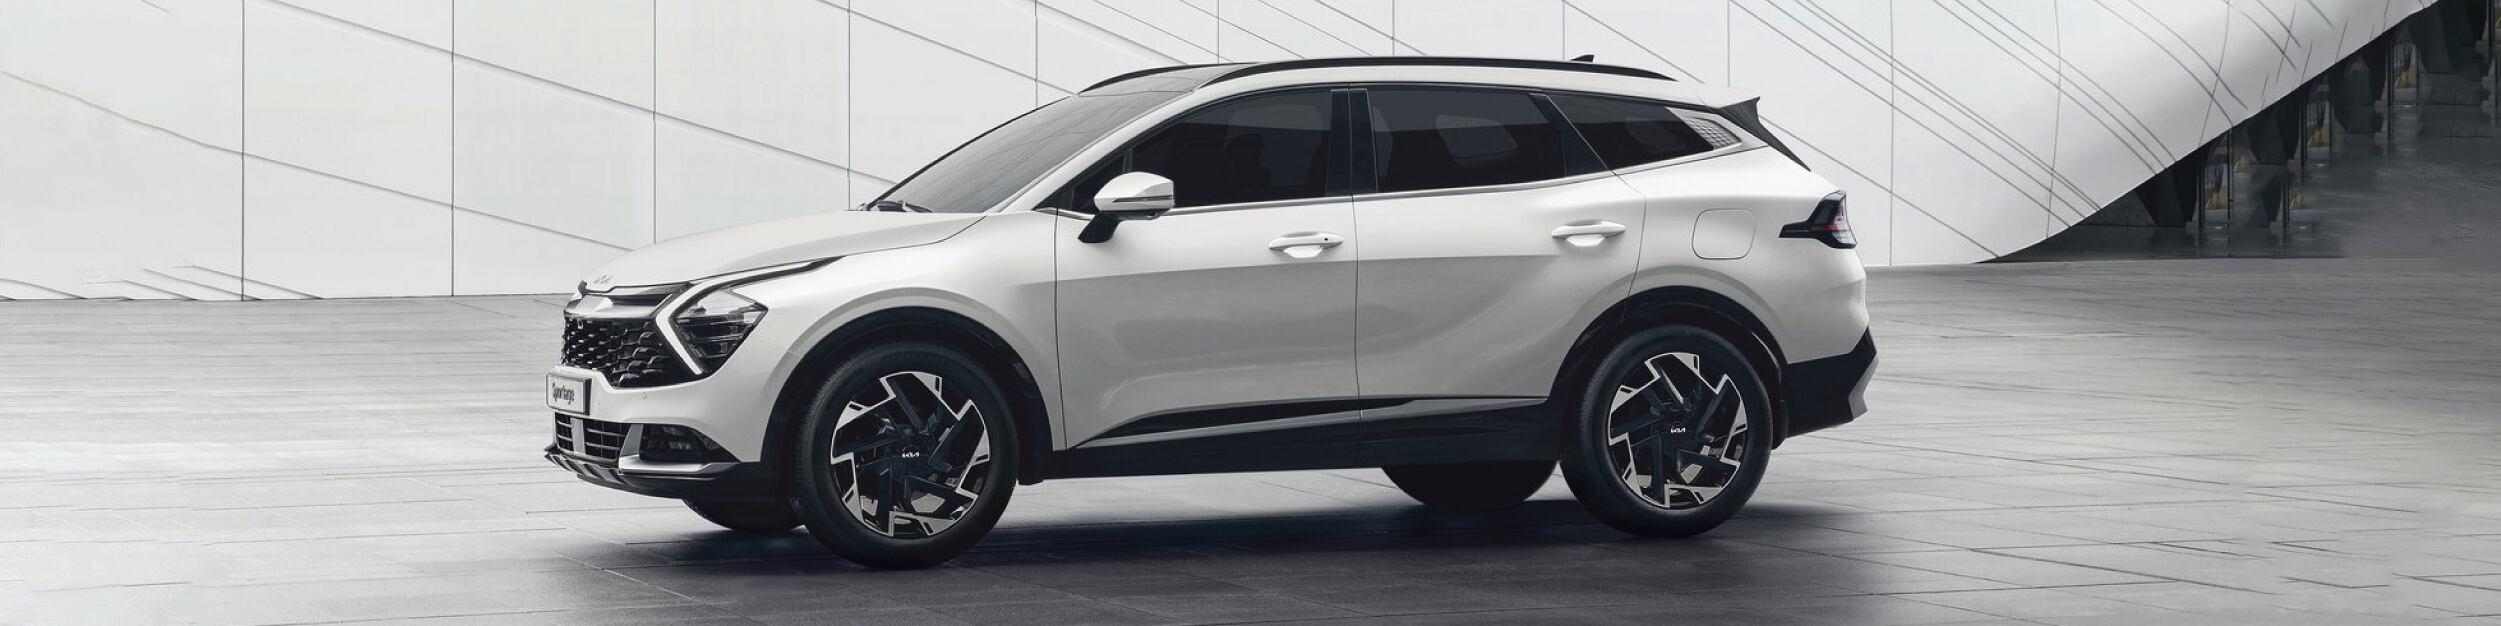 Fleet Vehicles & Commercial Car Lease Programs at Mississauga Kia